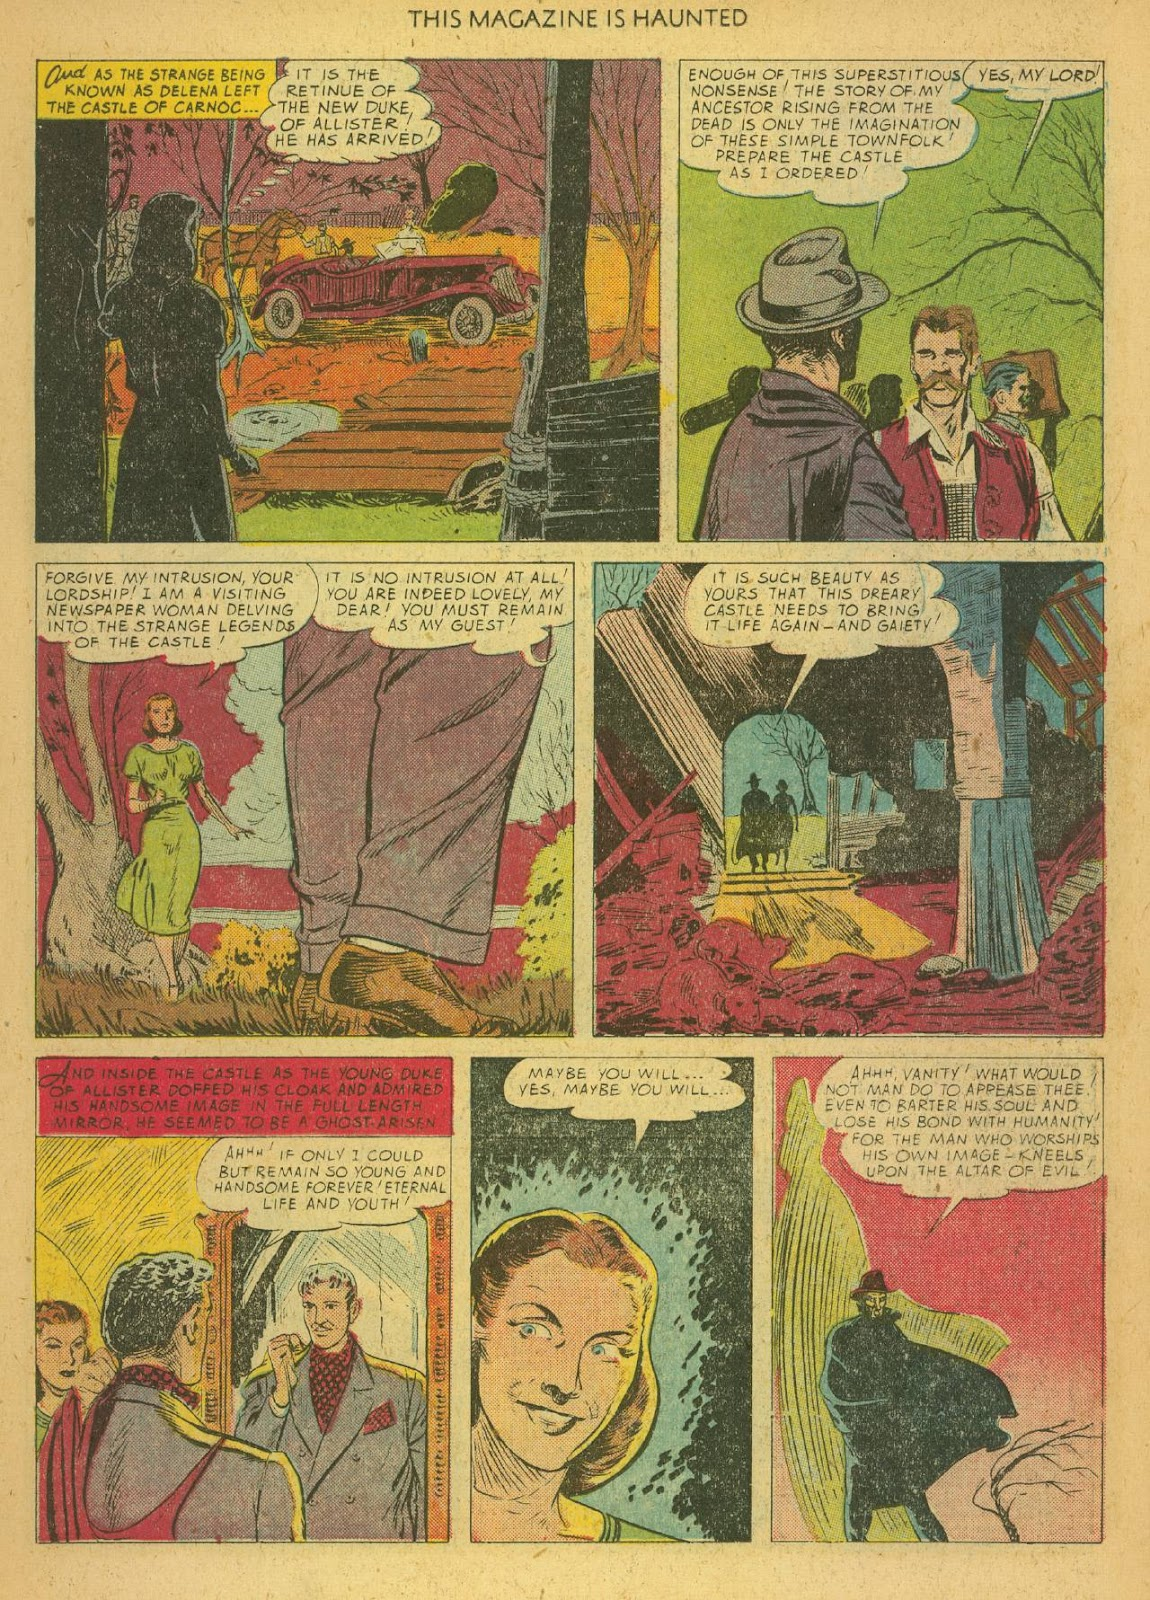 Read online This Magazine Is Haunted comic -  Issue #1 - 15